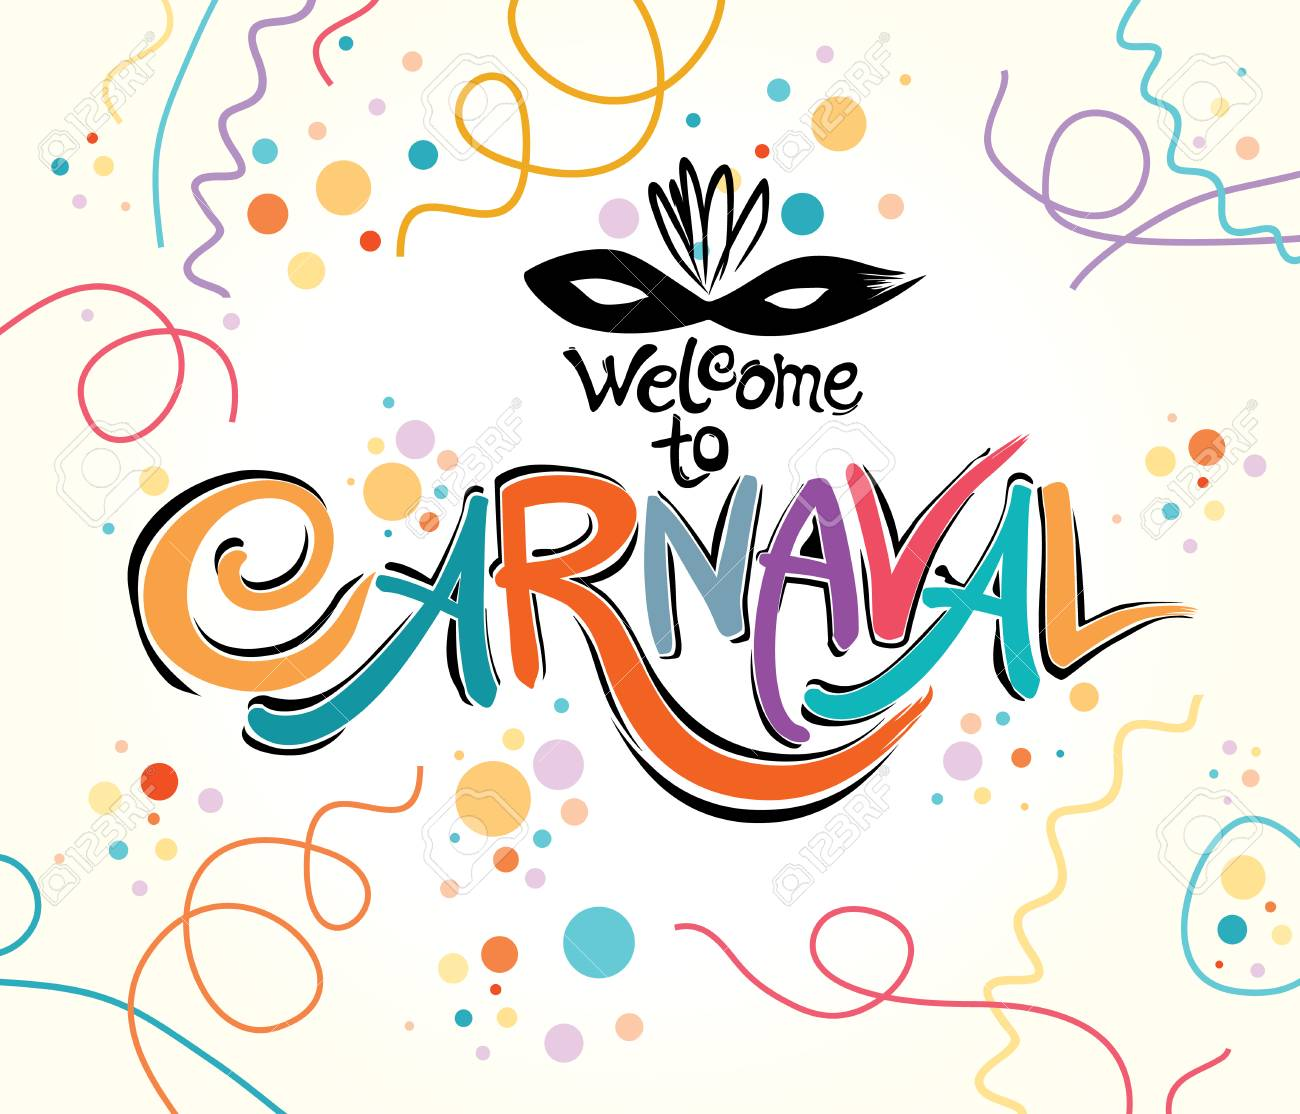 Free vector corporate invitation card design awesome graphic library welcome to carnaval invitation bright colorful card hand drawn rh 123rf com free vector royal invitation card design free vector royal invitation card stopboris Gallery